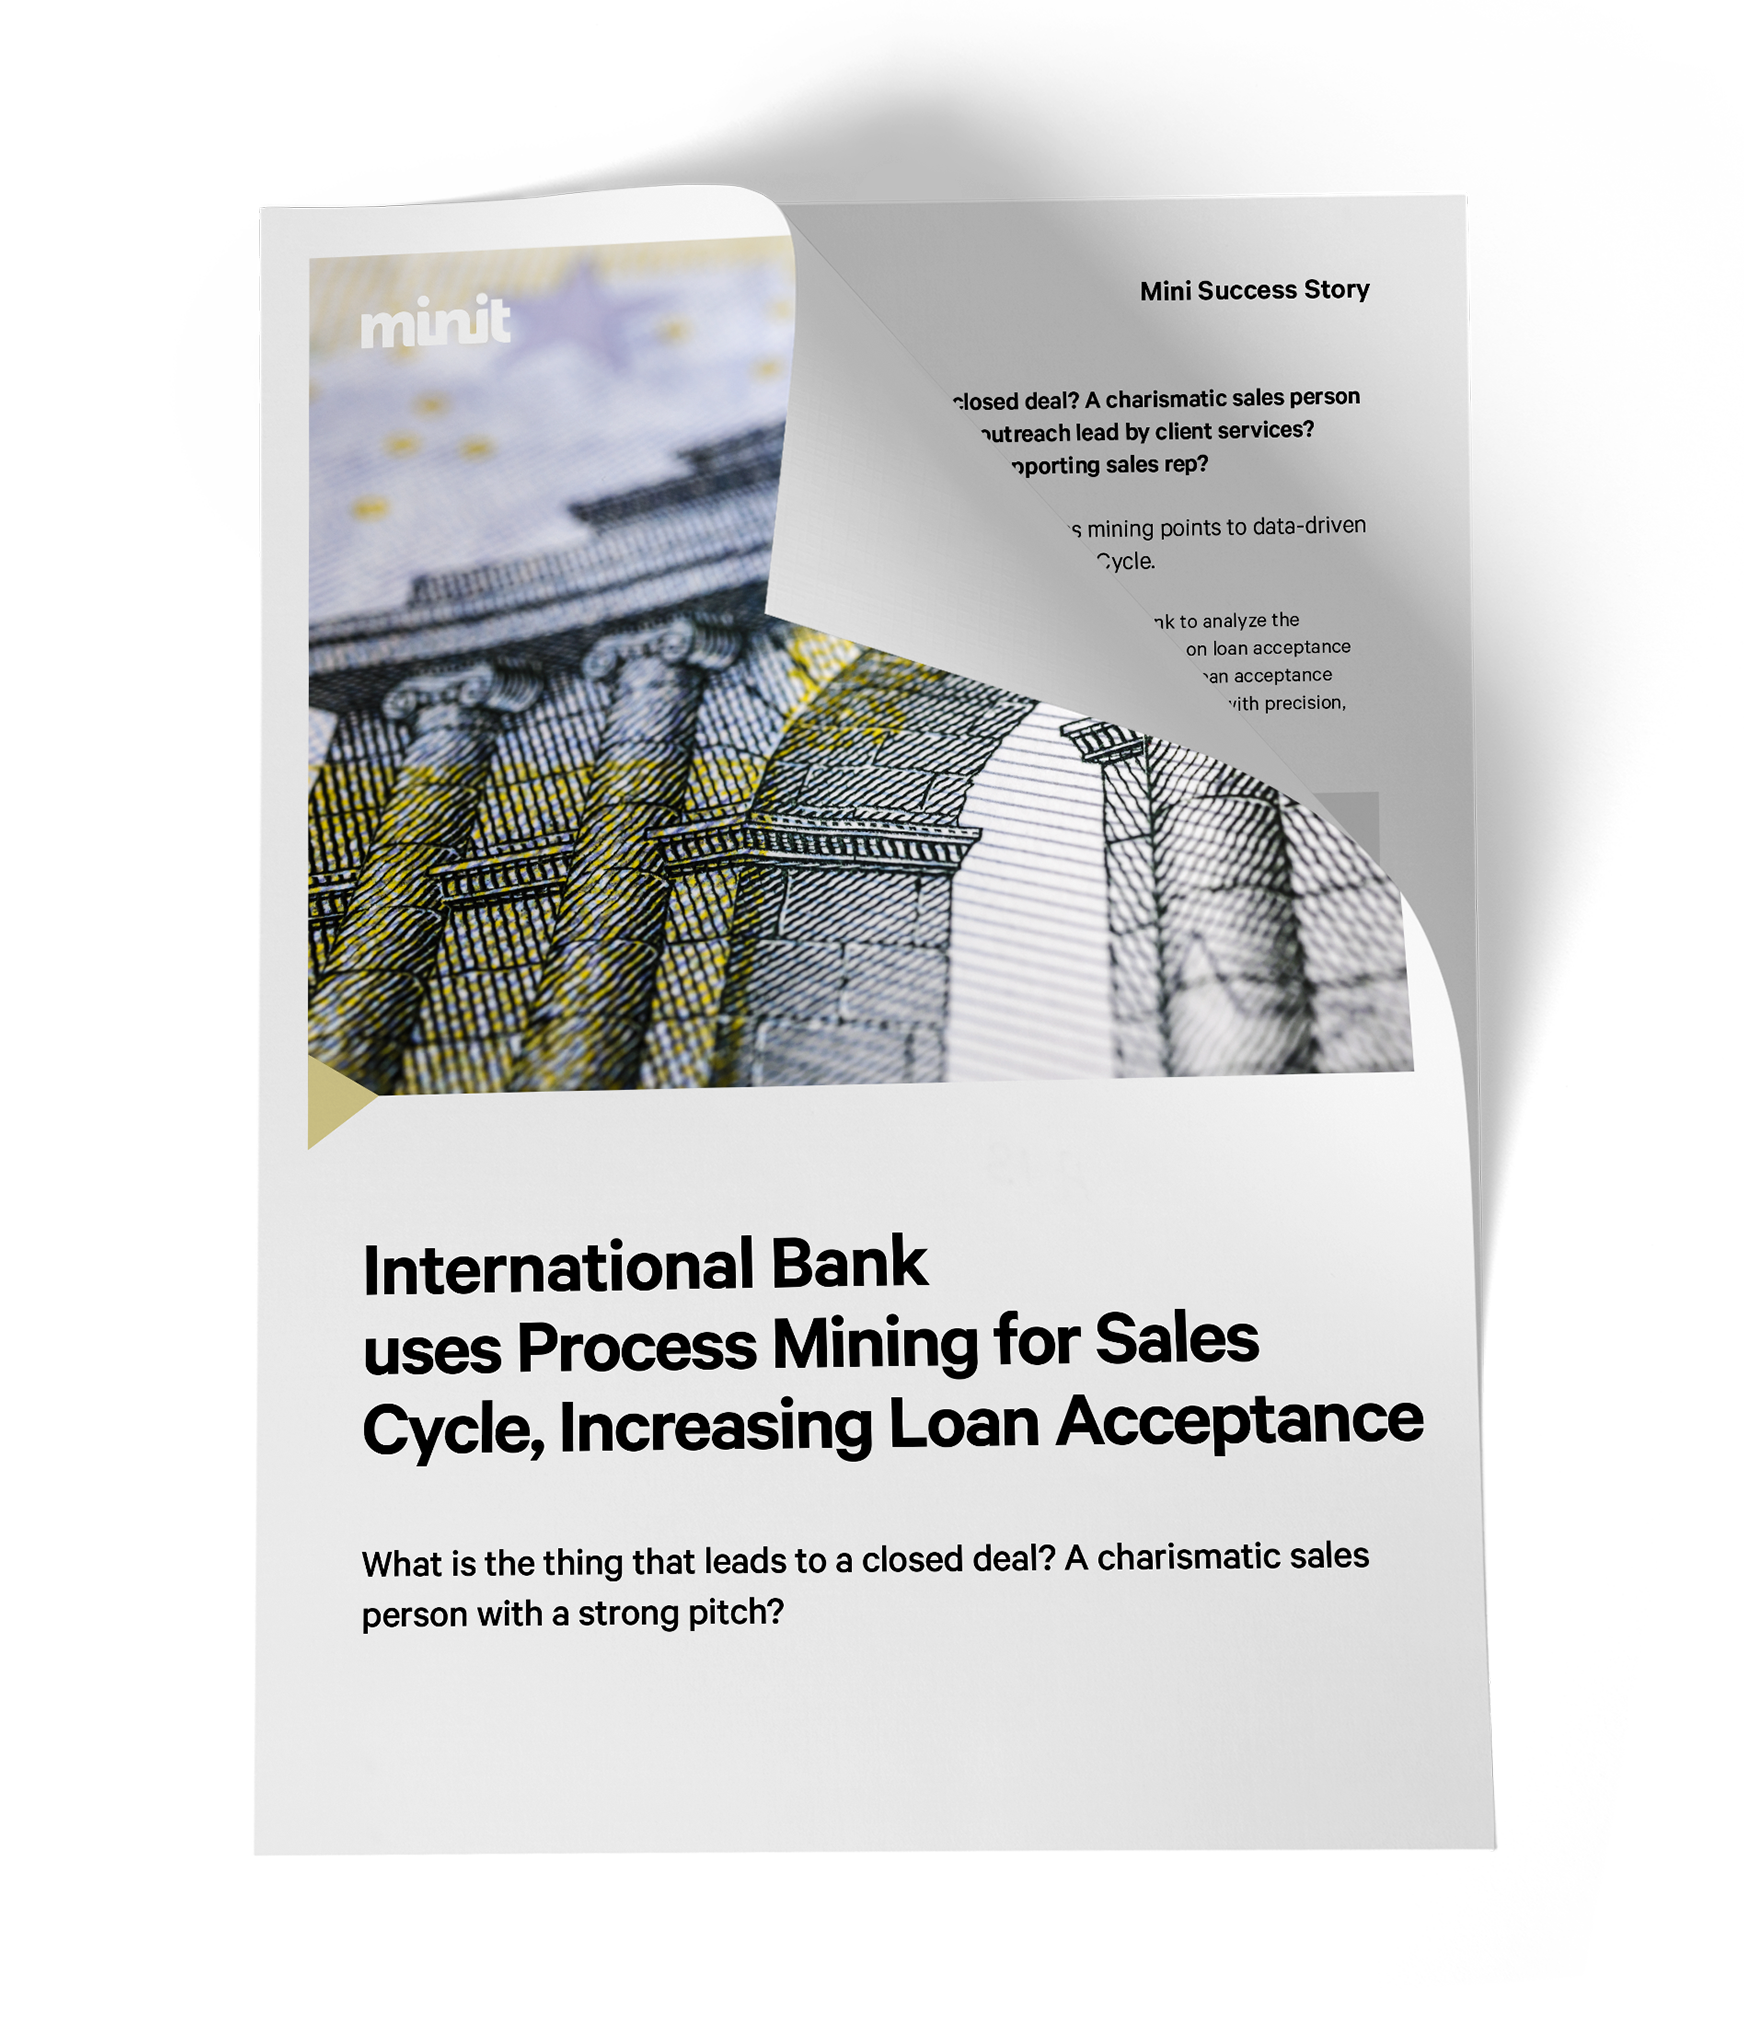 minit-success-story-international-bank-increases-loan-acceptance